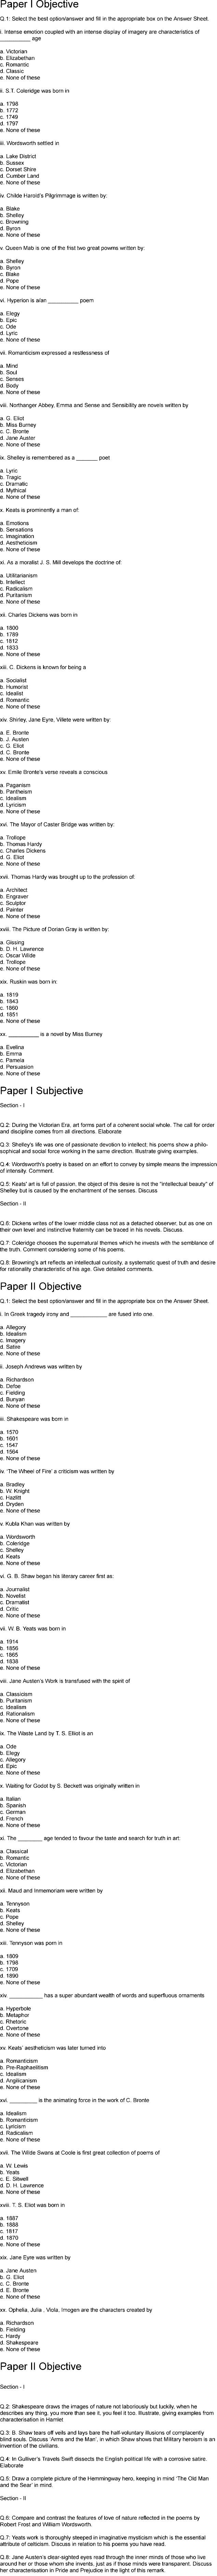 English Literature CSS Past Papers 2012